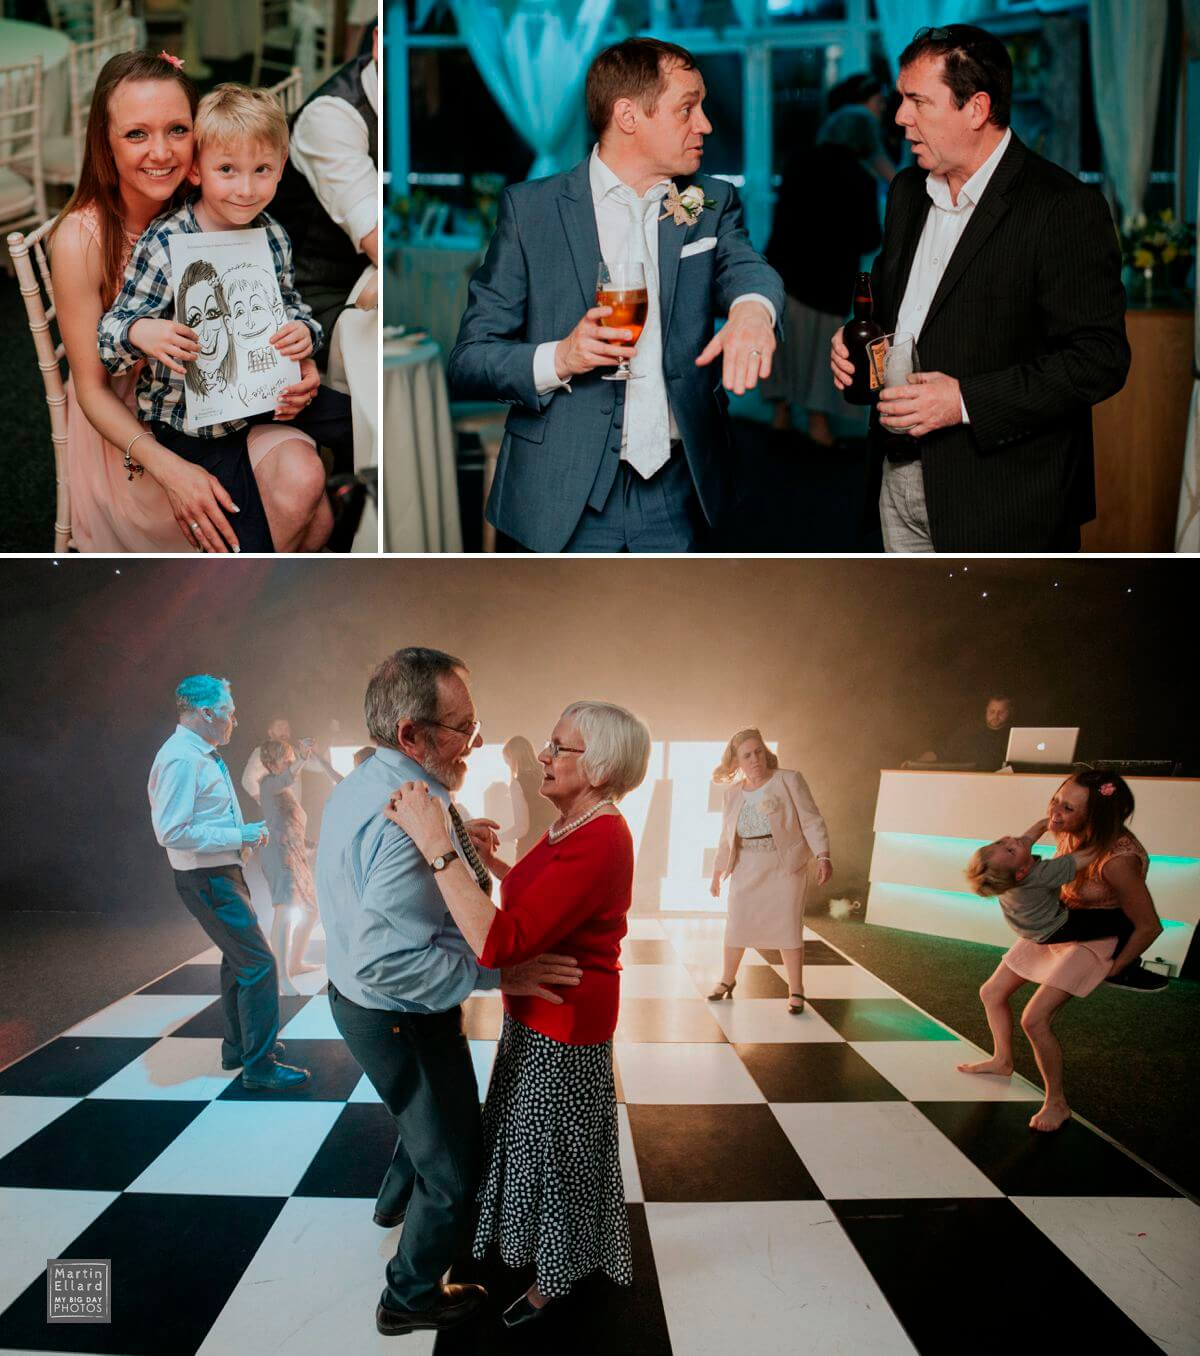 Oldwalls wedding photographer